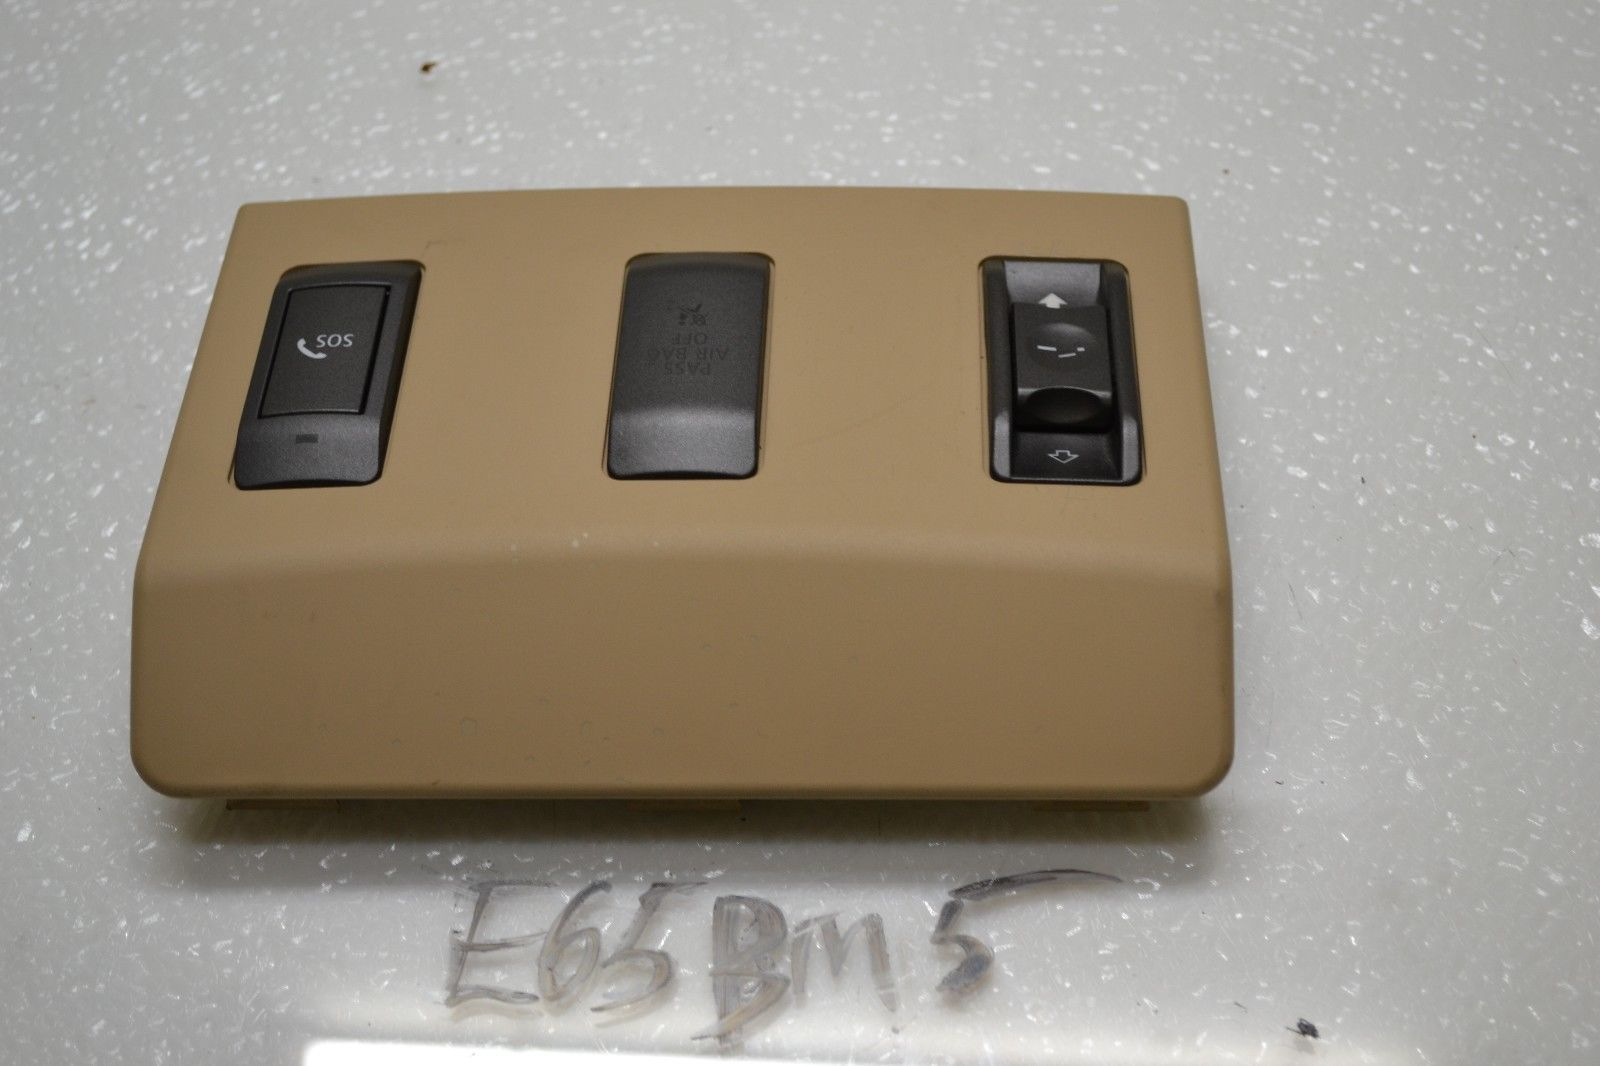 2006-2008 BMW 750Li 750i SUNROOF SWITCH BUTTON SOS AIR BAG TRIM COVER PANEL Does not apply